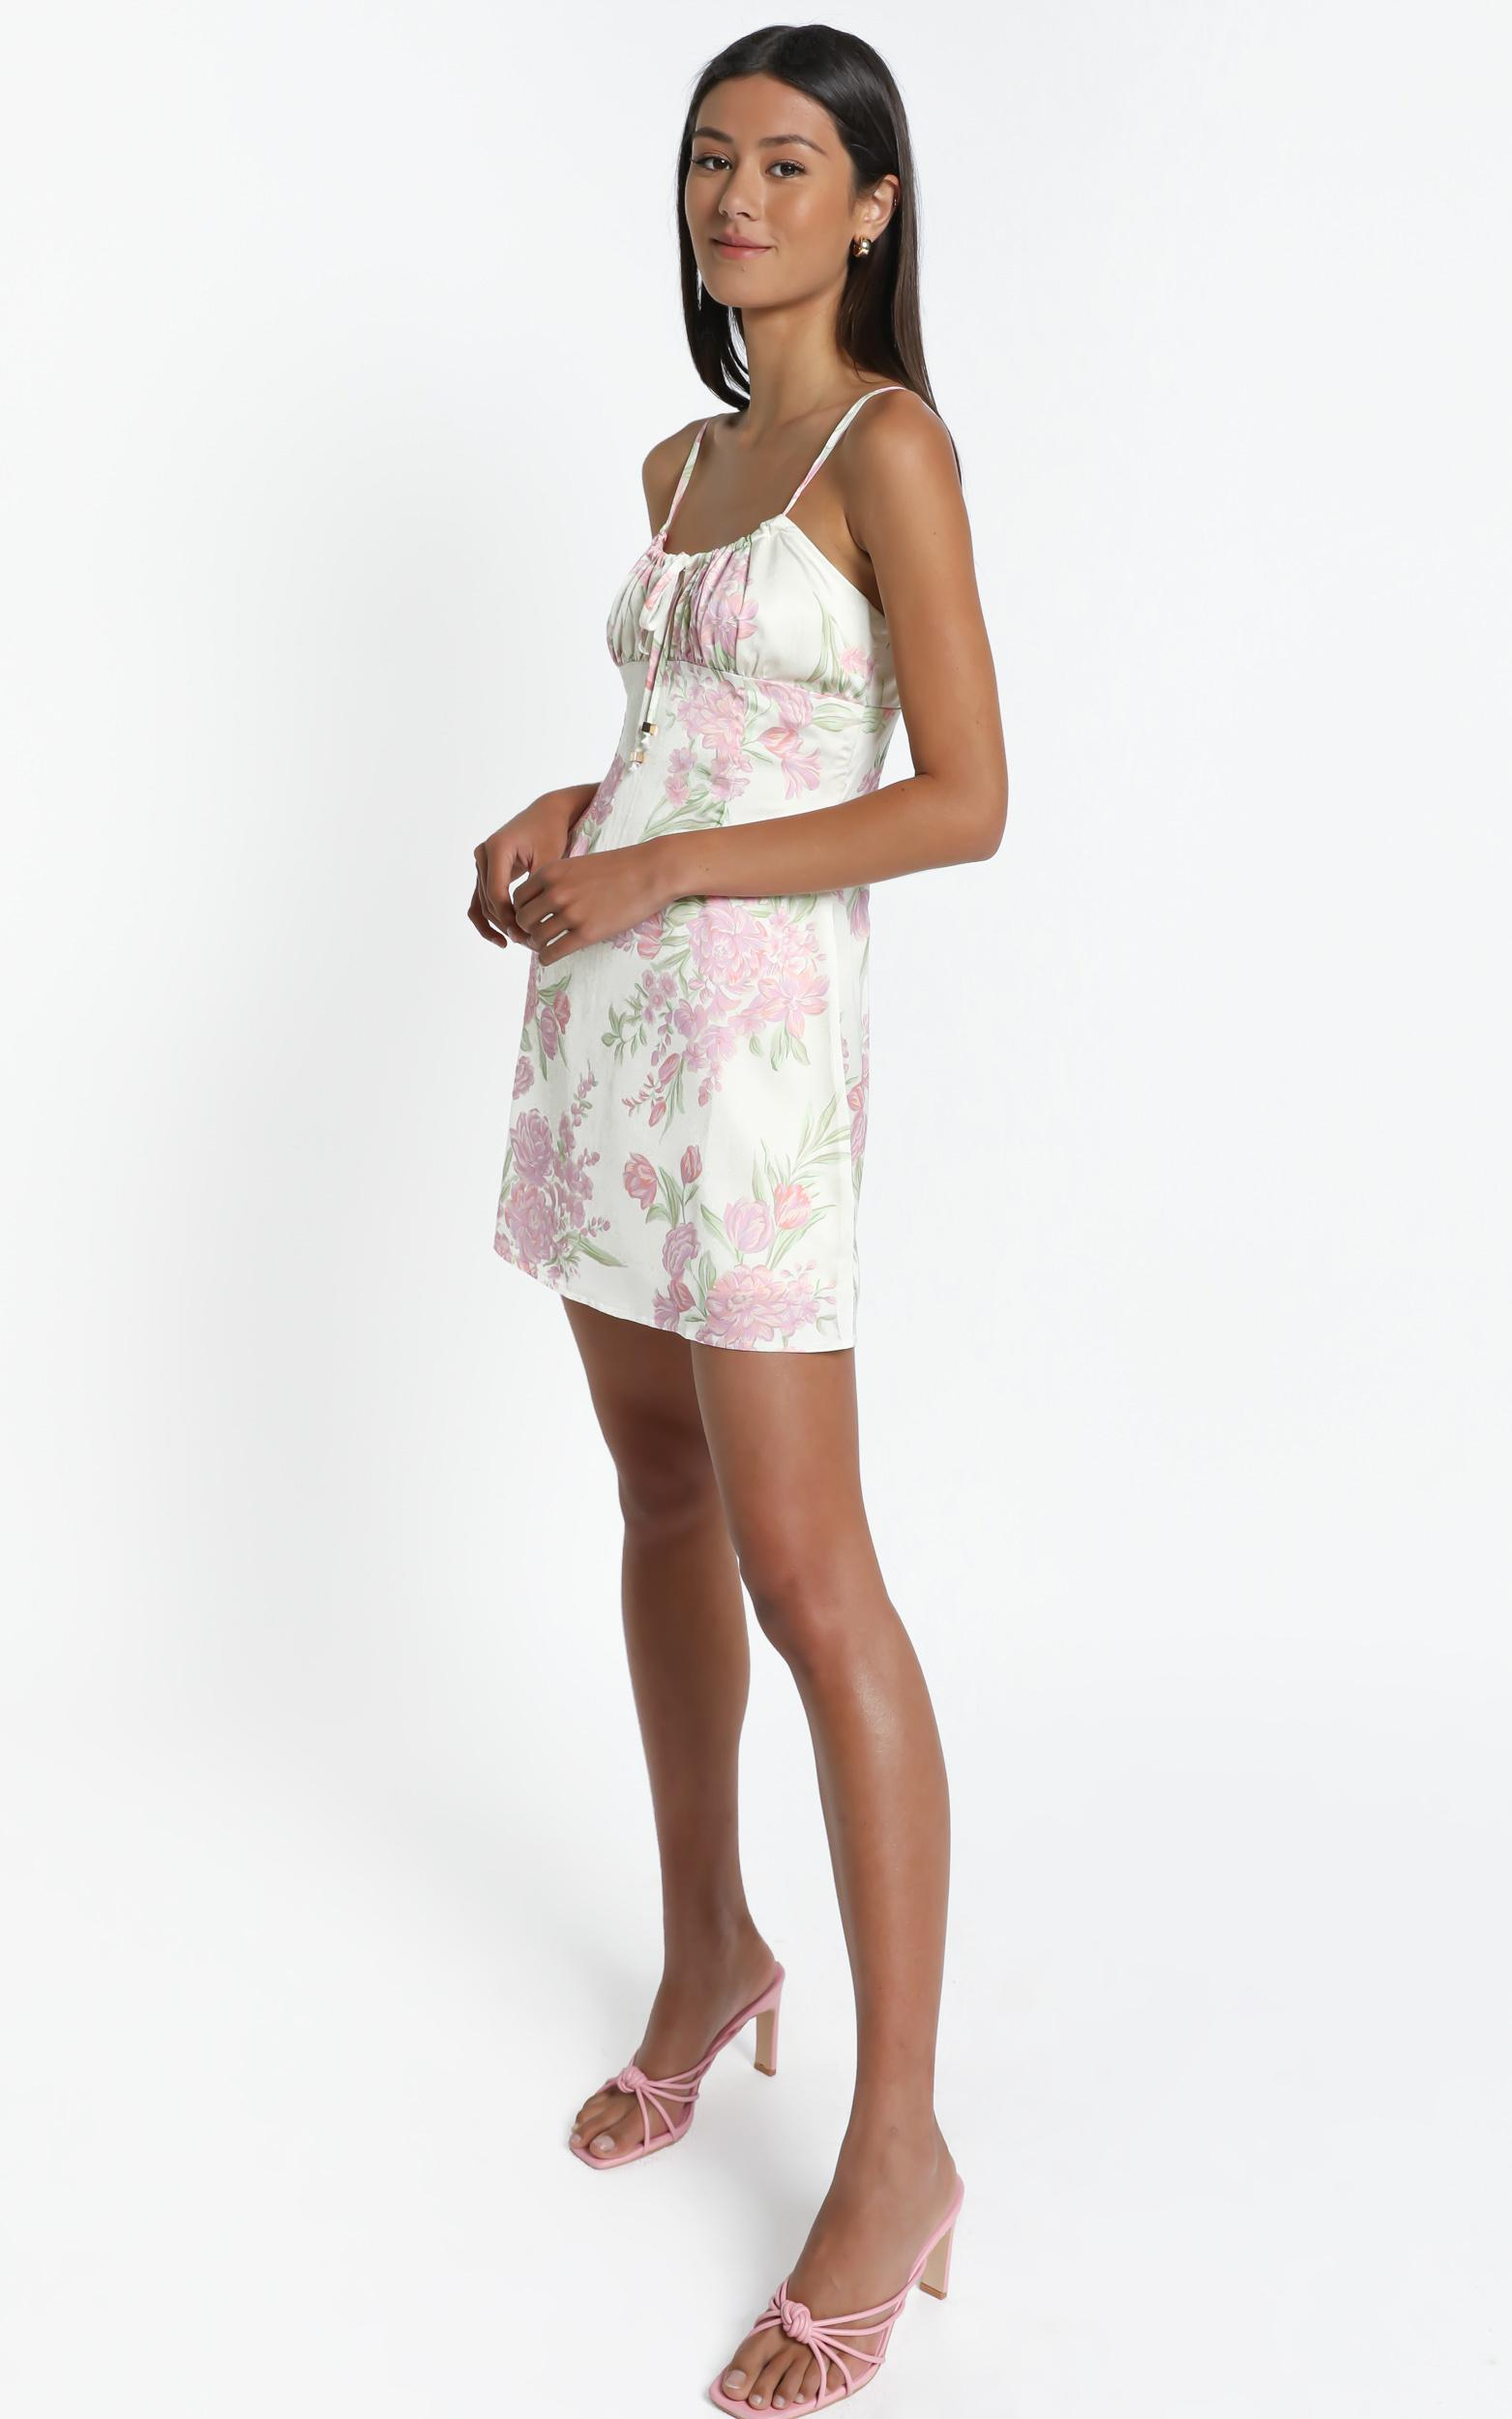 Ive Got You Now Dress in Cream Floral - 6 (XS), CRE1, hi-res image number null